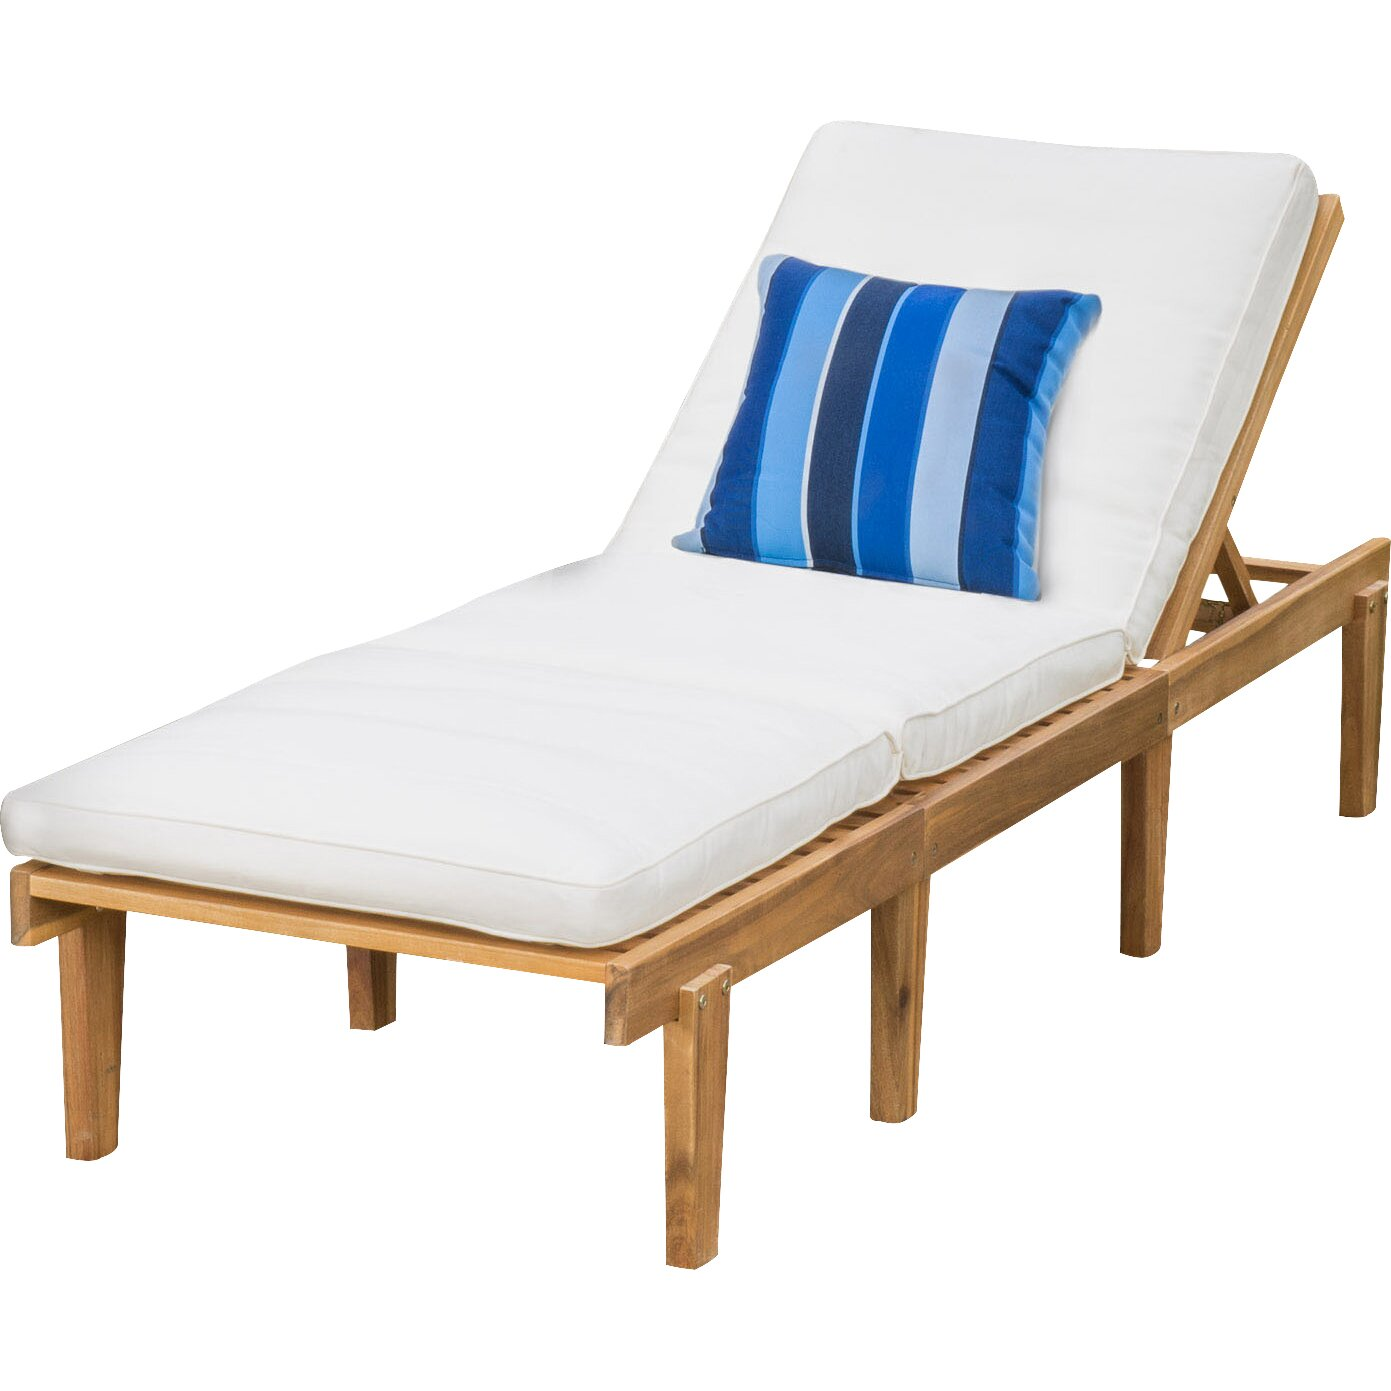 Mercury row ardsley chaise lounge with cushions reviews for Chaise lounge cushions